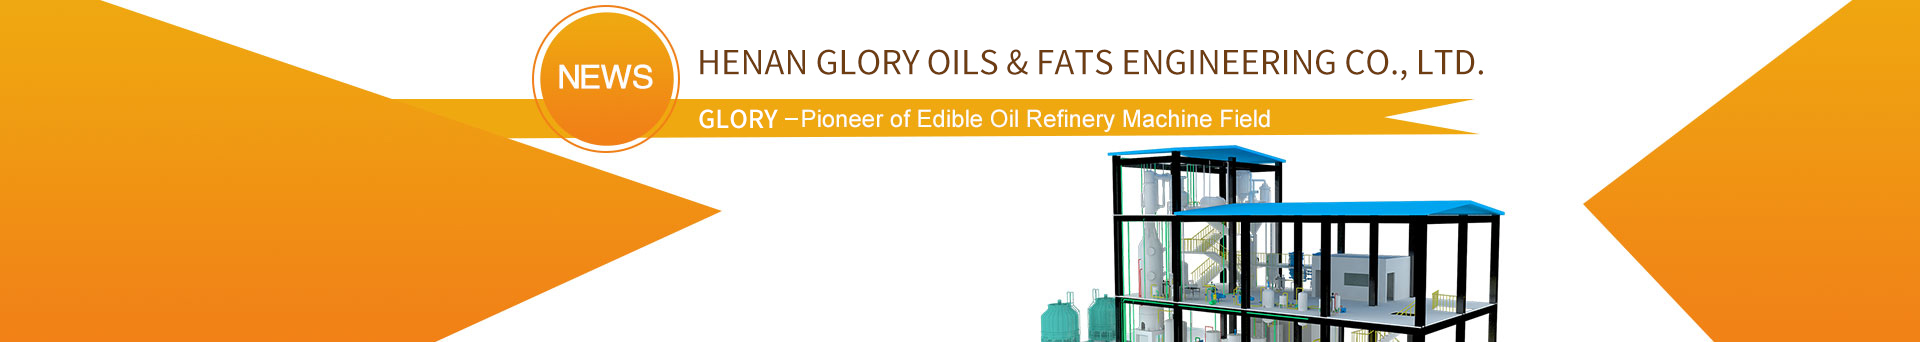 edible oil refinery industry news